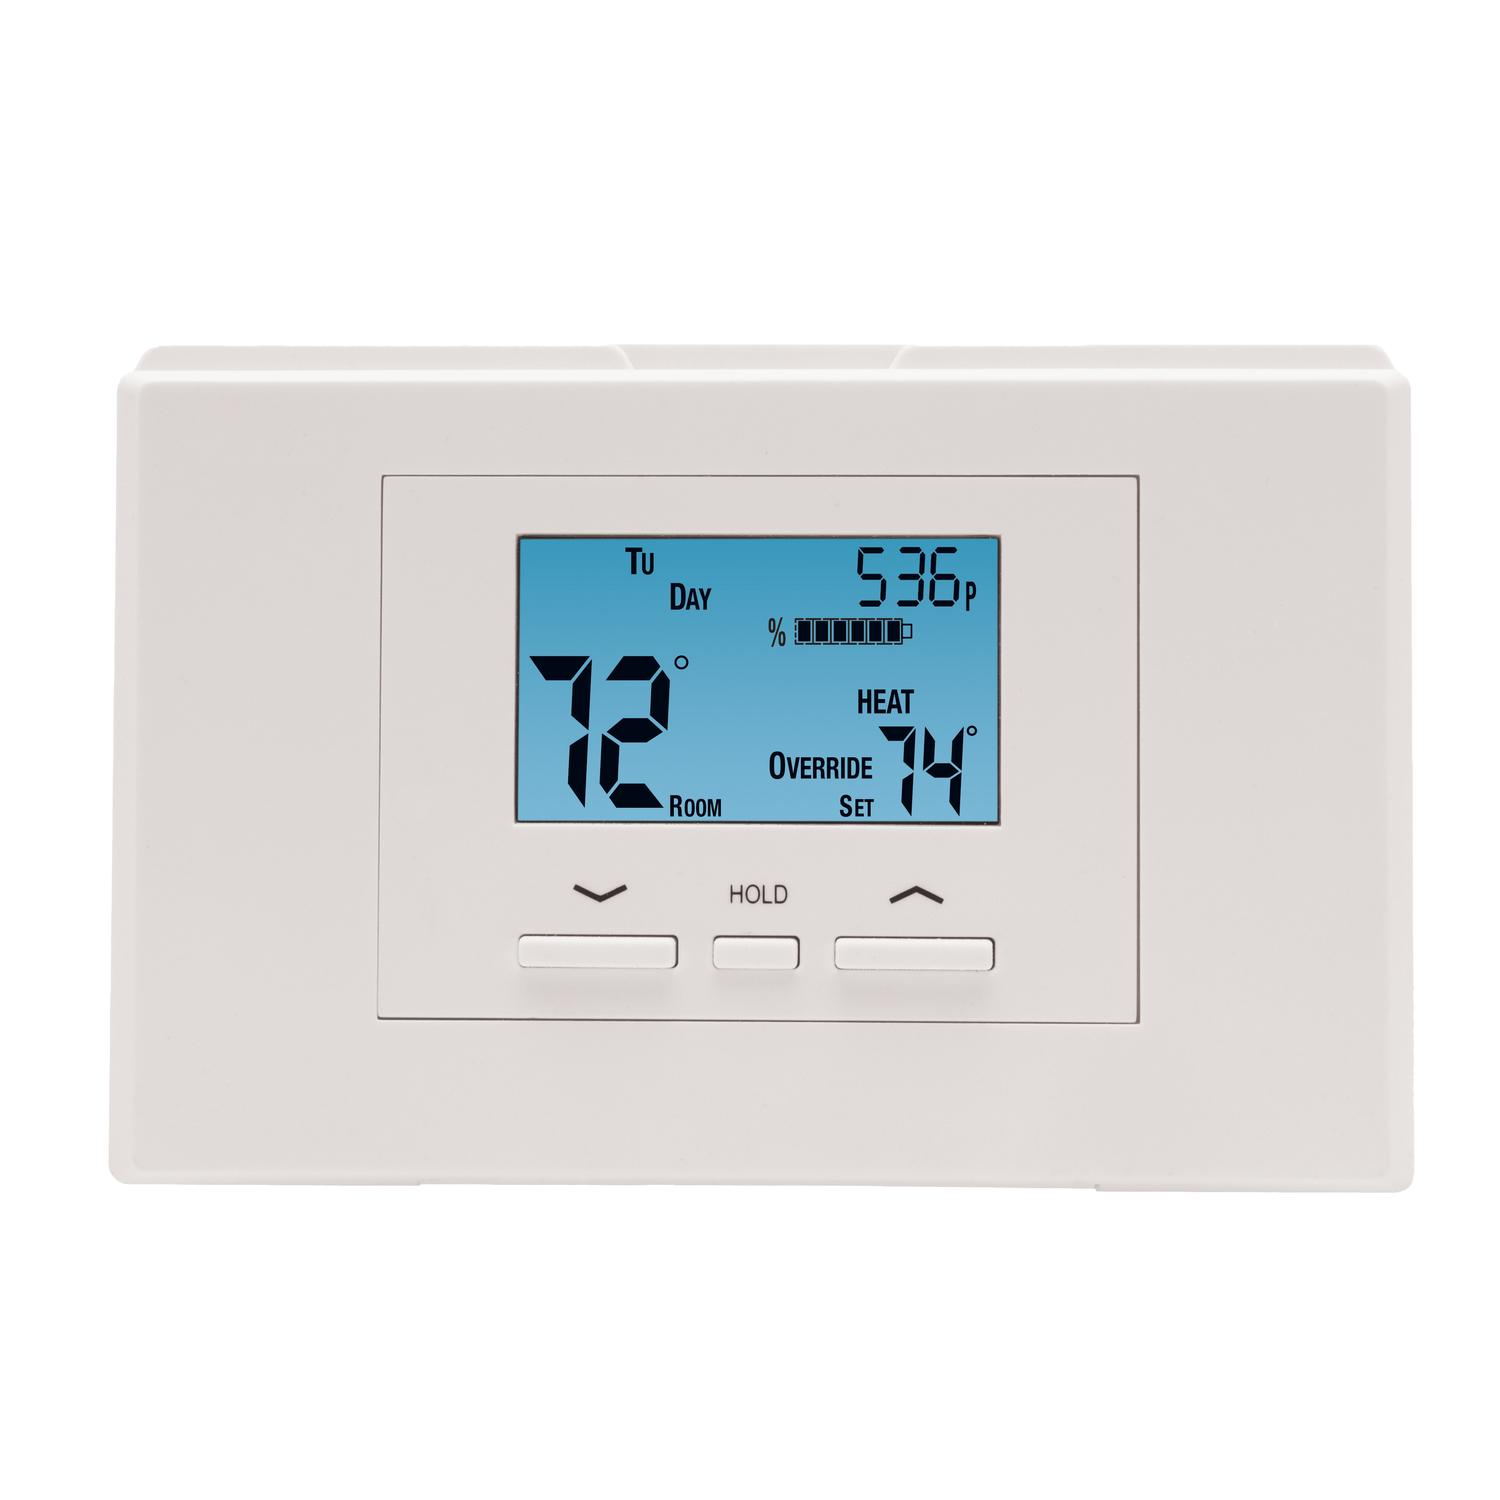 Lux 1500 Thermostat Wiring Diagram - Schematic Diagrams